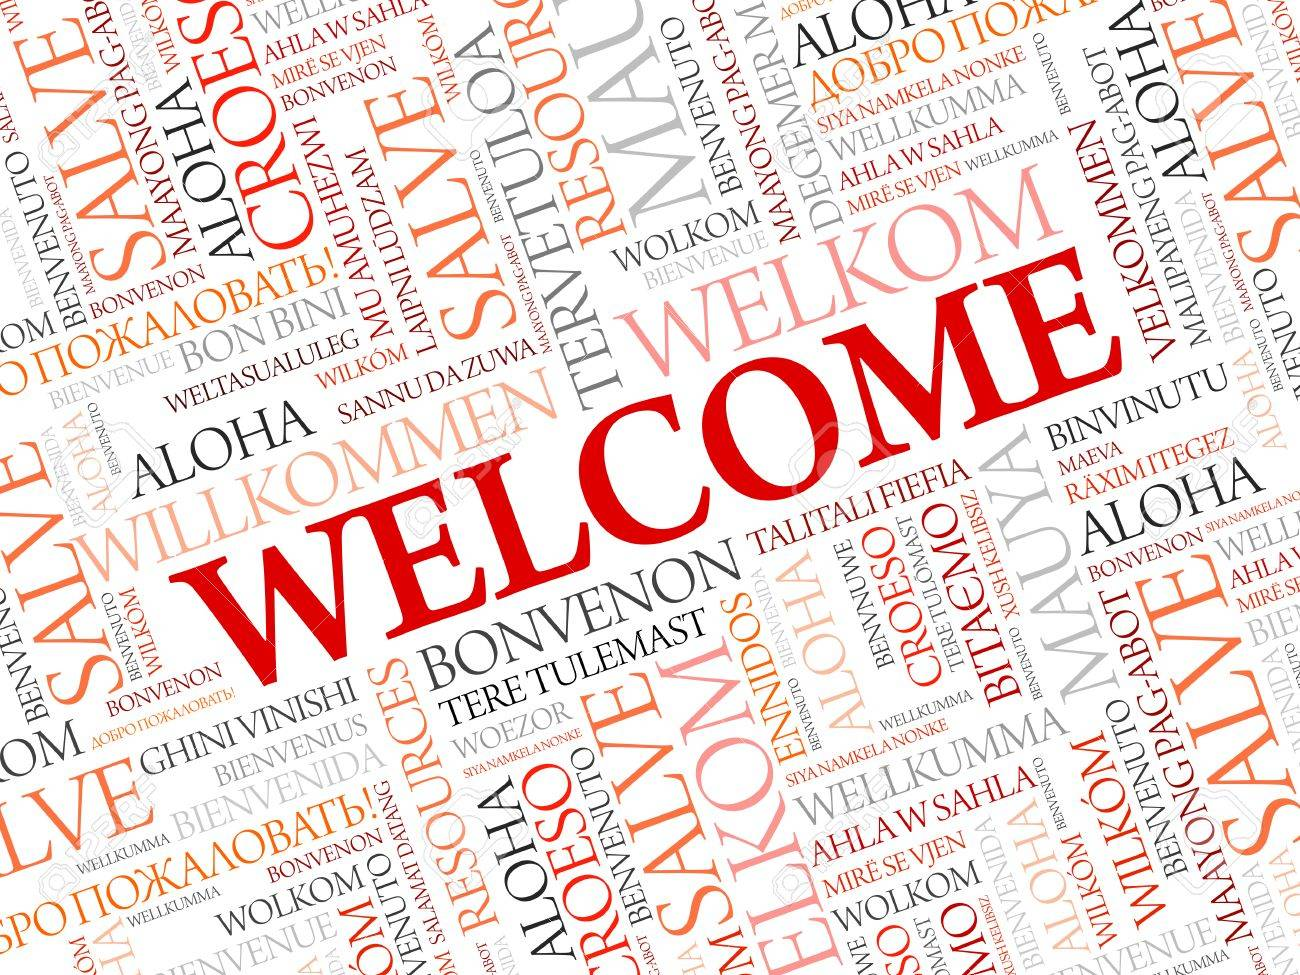 WELCOME word cloud in different languages, concept background - 57872021